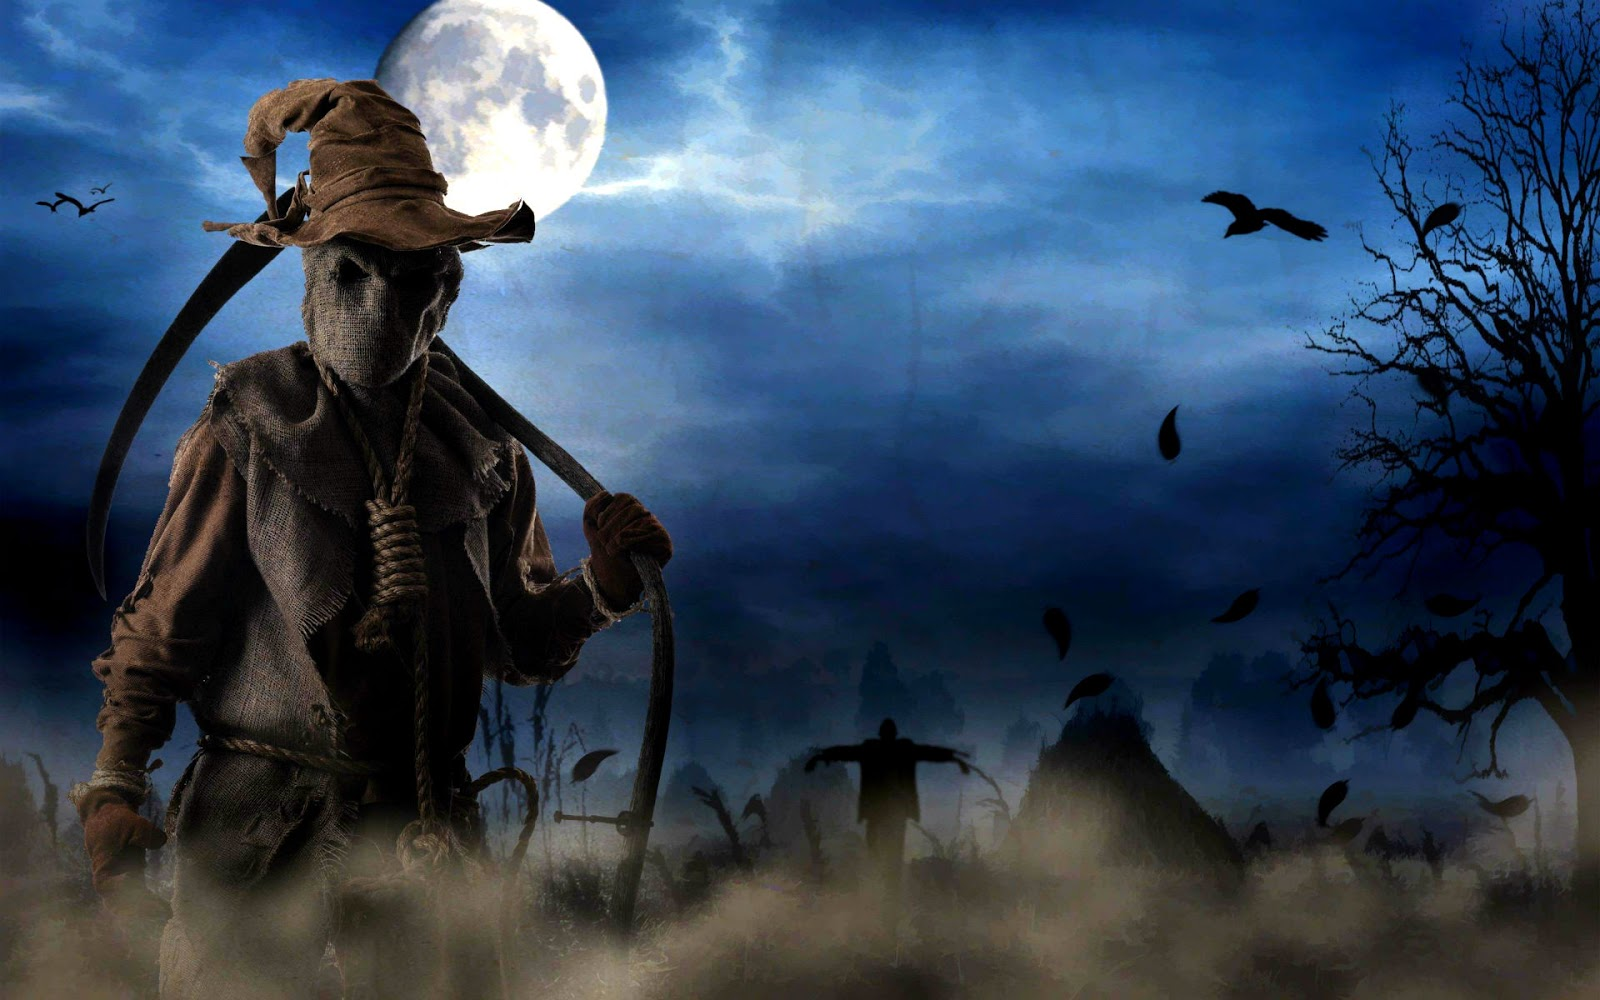 Wallpaper World: Scary Halloween Wallpapers - Scary Halloween